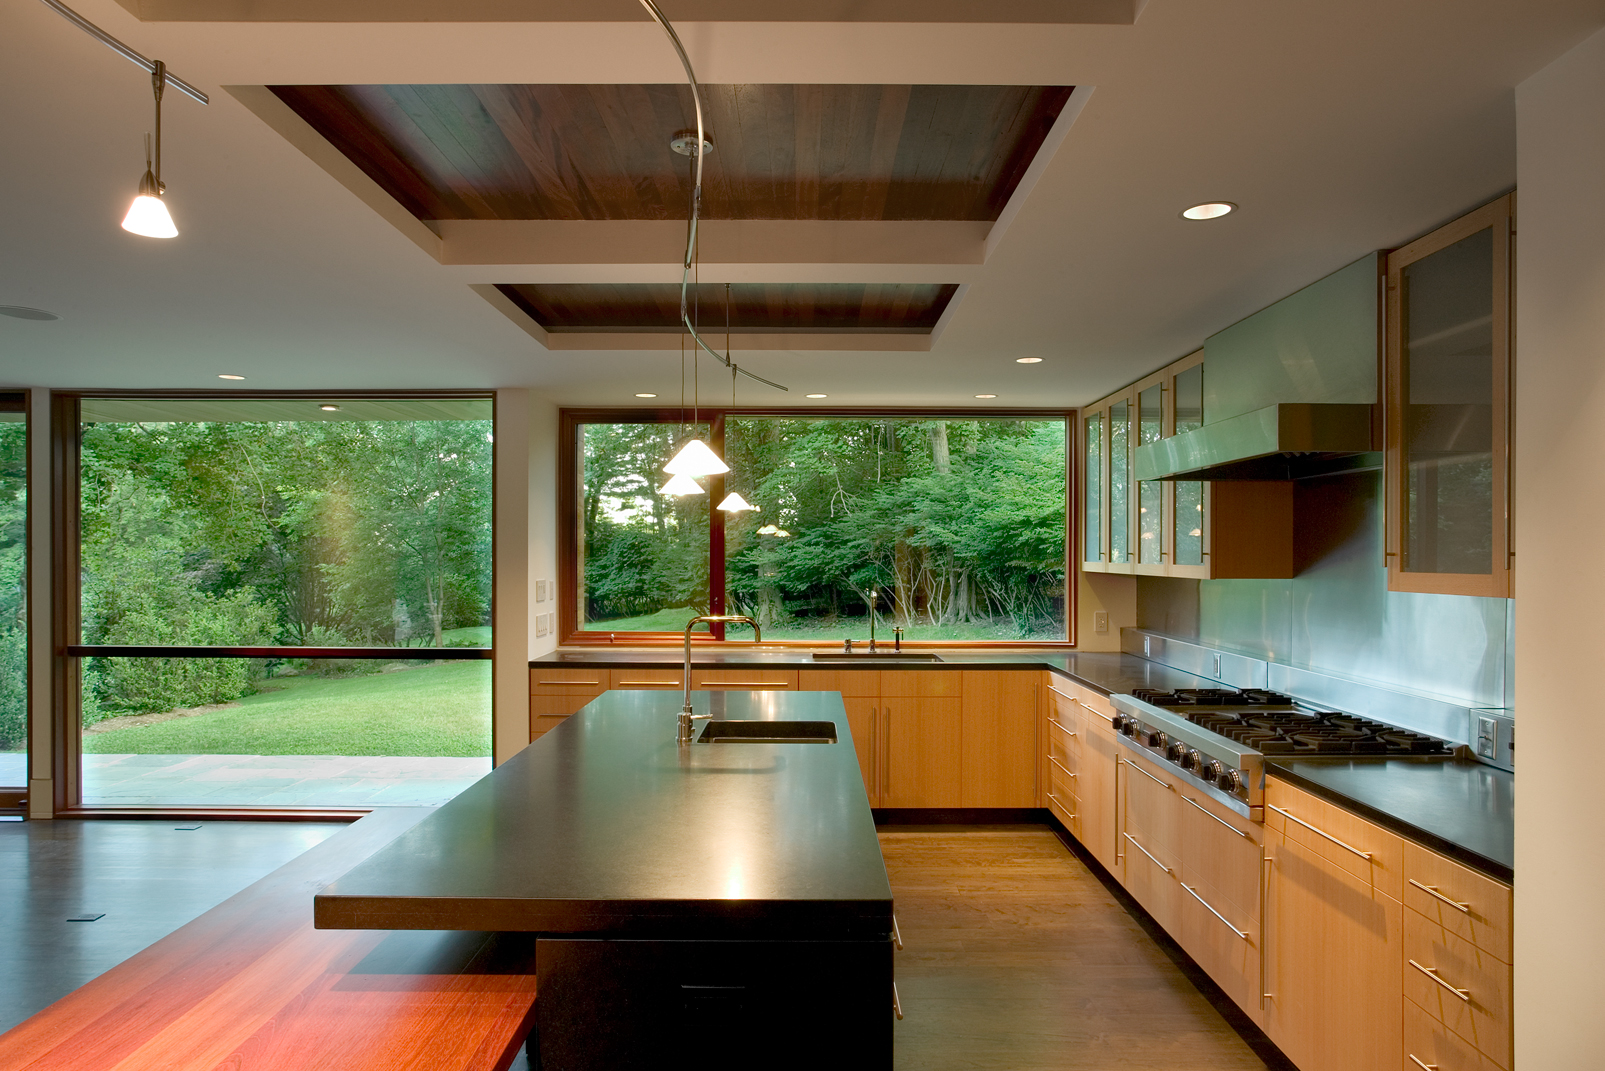 super clean modern kitchen bright large glass windows